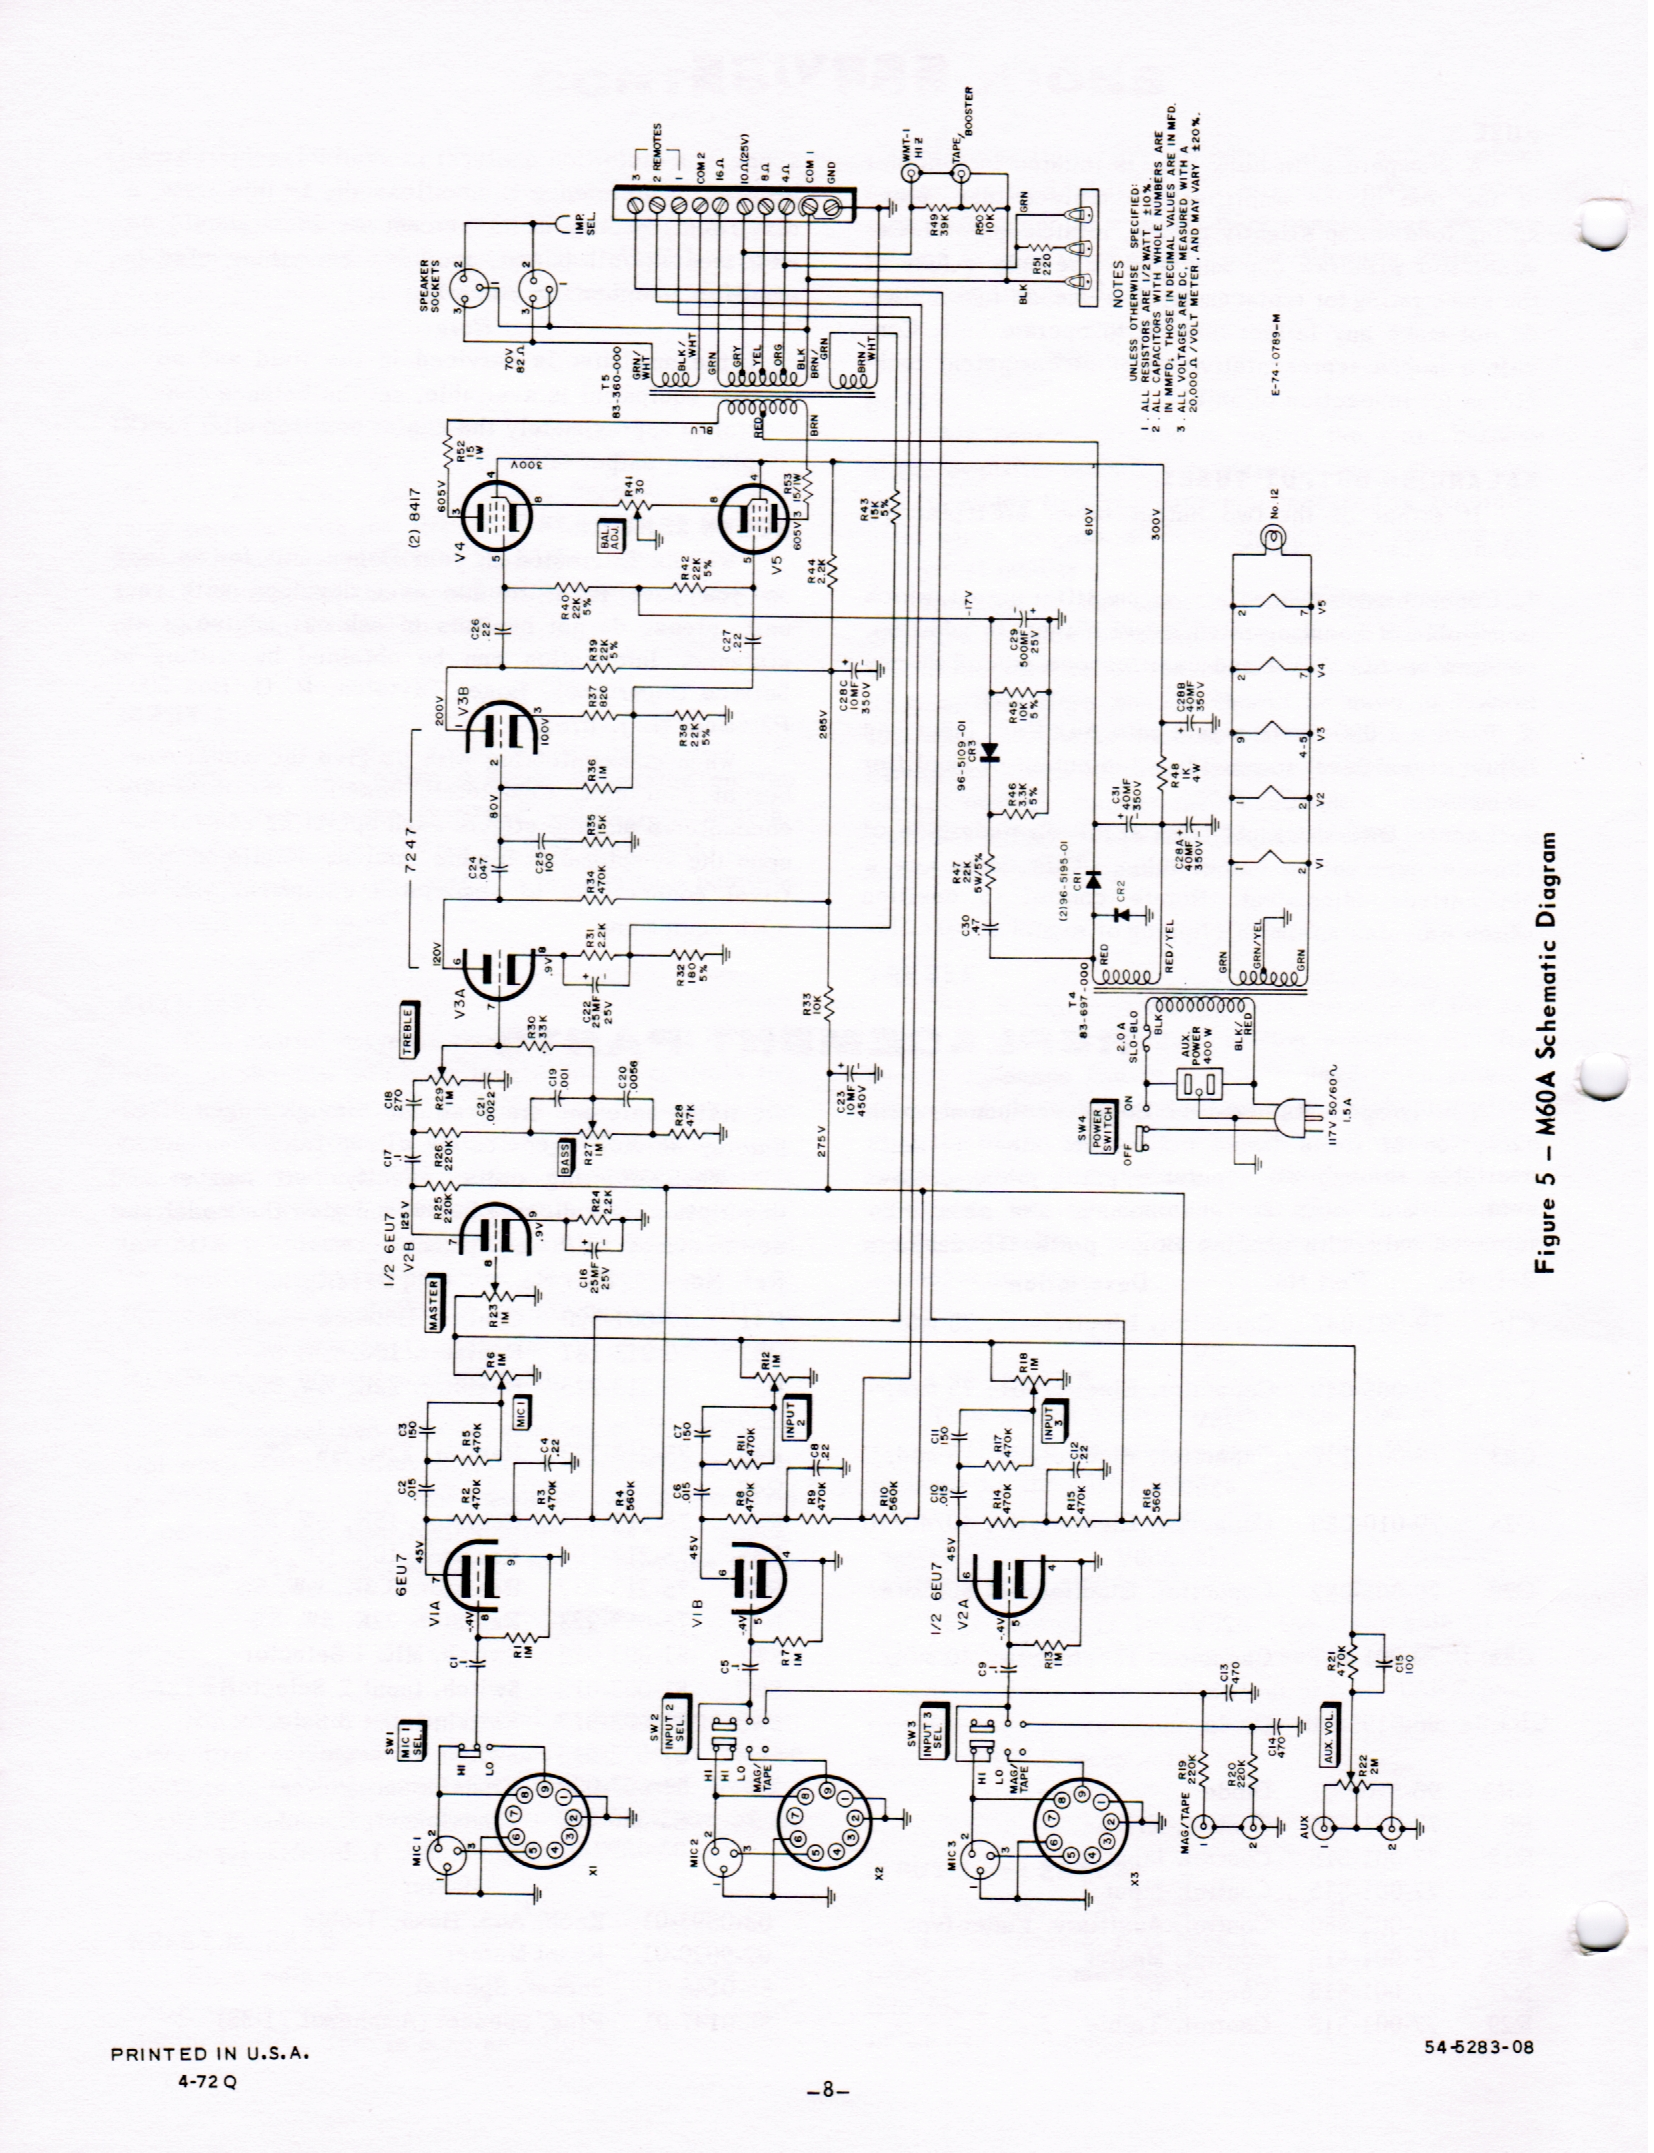 Dukane Nurse Call Wiring Diagram from static-resources.imageservice.cloud